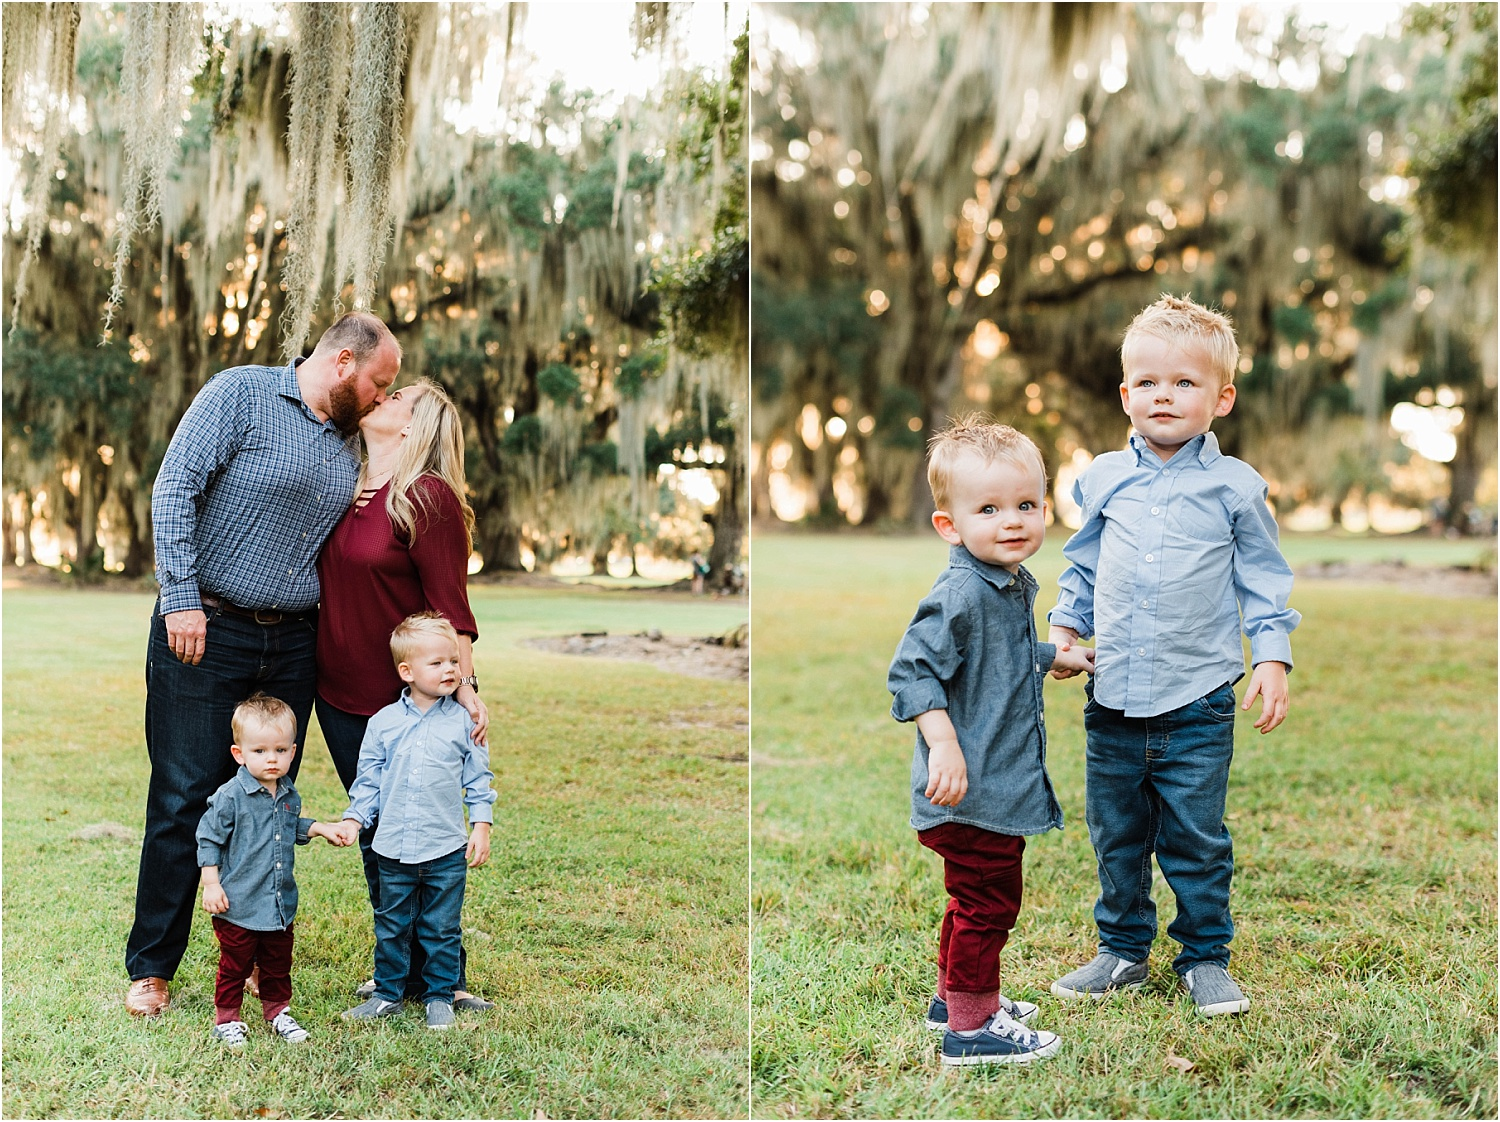 Smalley Family Fall 2019-Fountainbleau-State-Park-Family-Photos_Gabby Chapin Photography_0010_BLOG.jpg